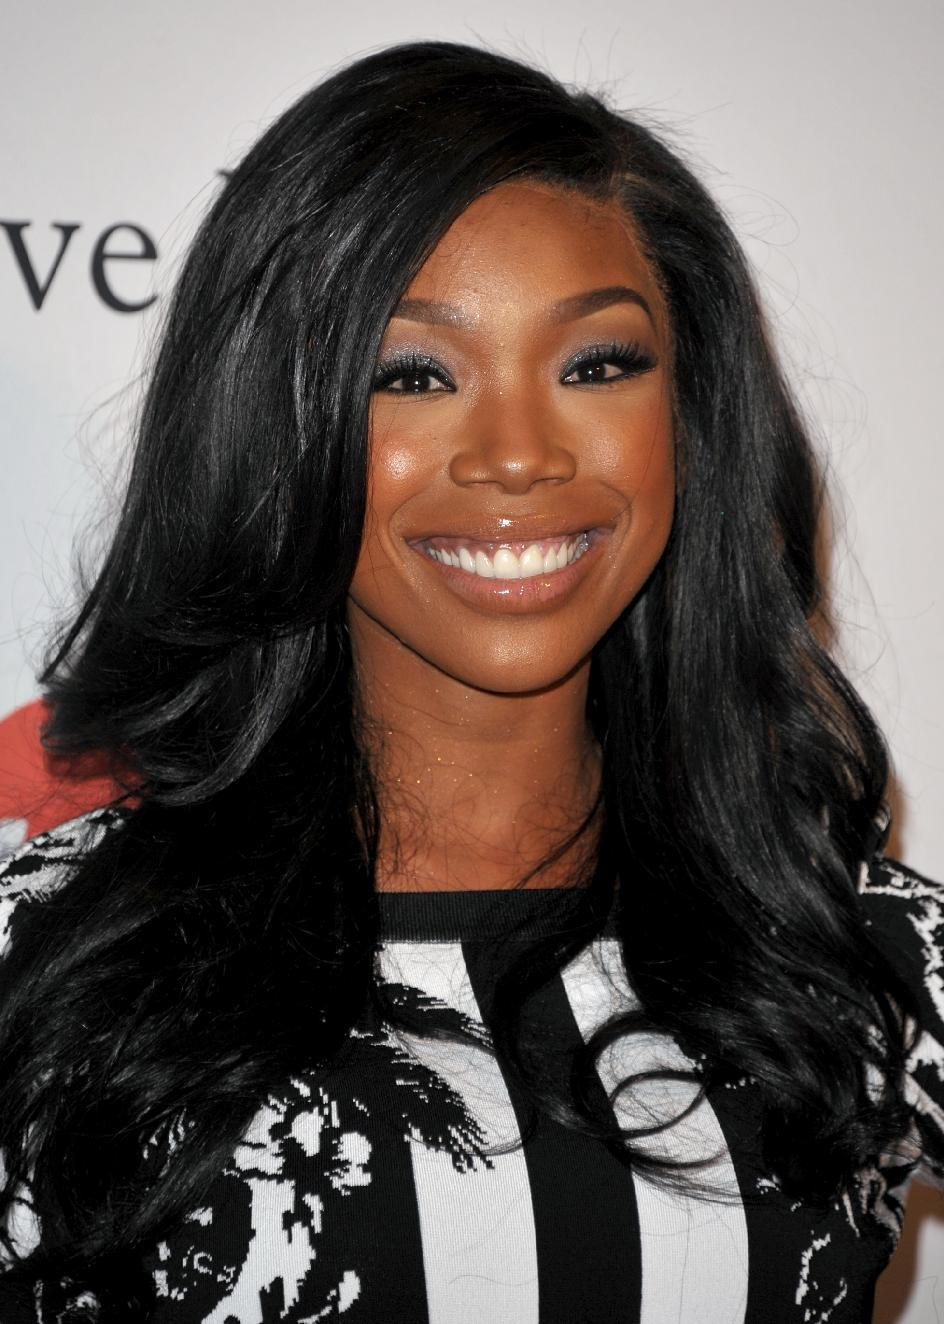 Recording artist Brandy arrives at the Clive Davis Pre-GRAMMY Gala on Saturday, Feb. 9, 2013 in Beverly Hills, Calif. (Photo by John Shearer/Invision/AP)